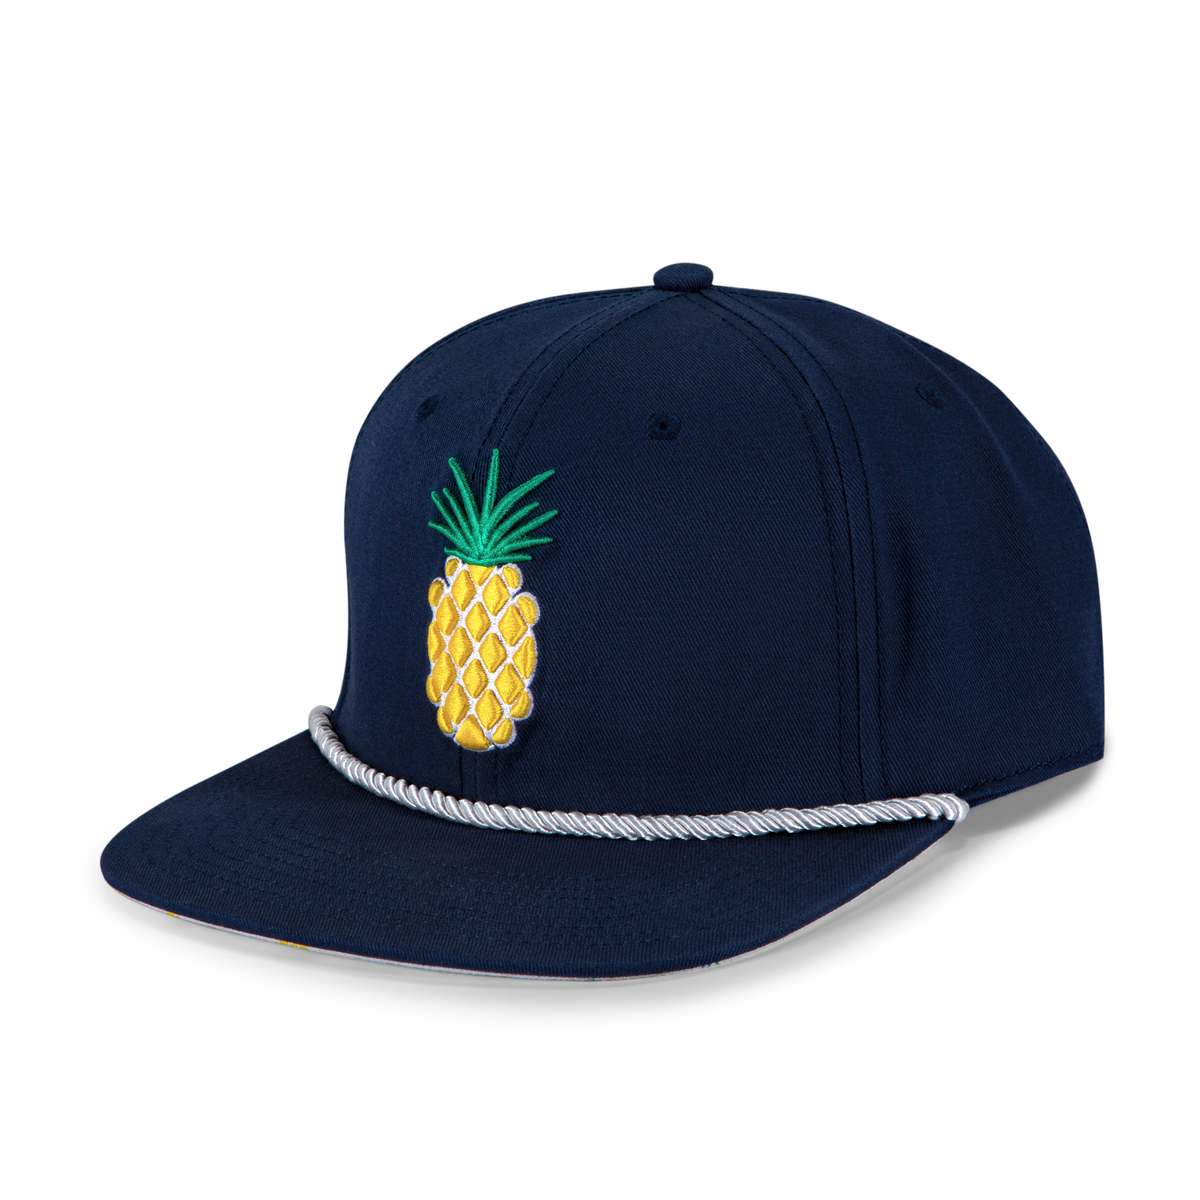 Flat Brim Pineapple Rope Cap